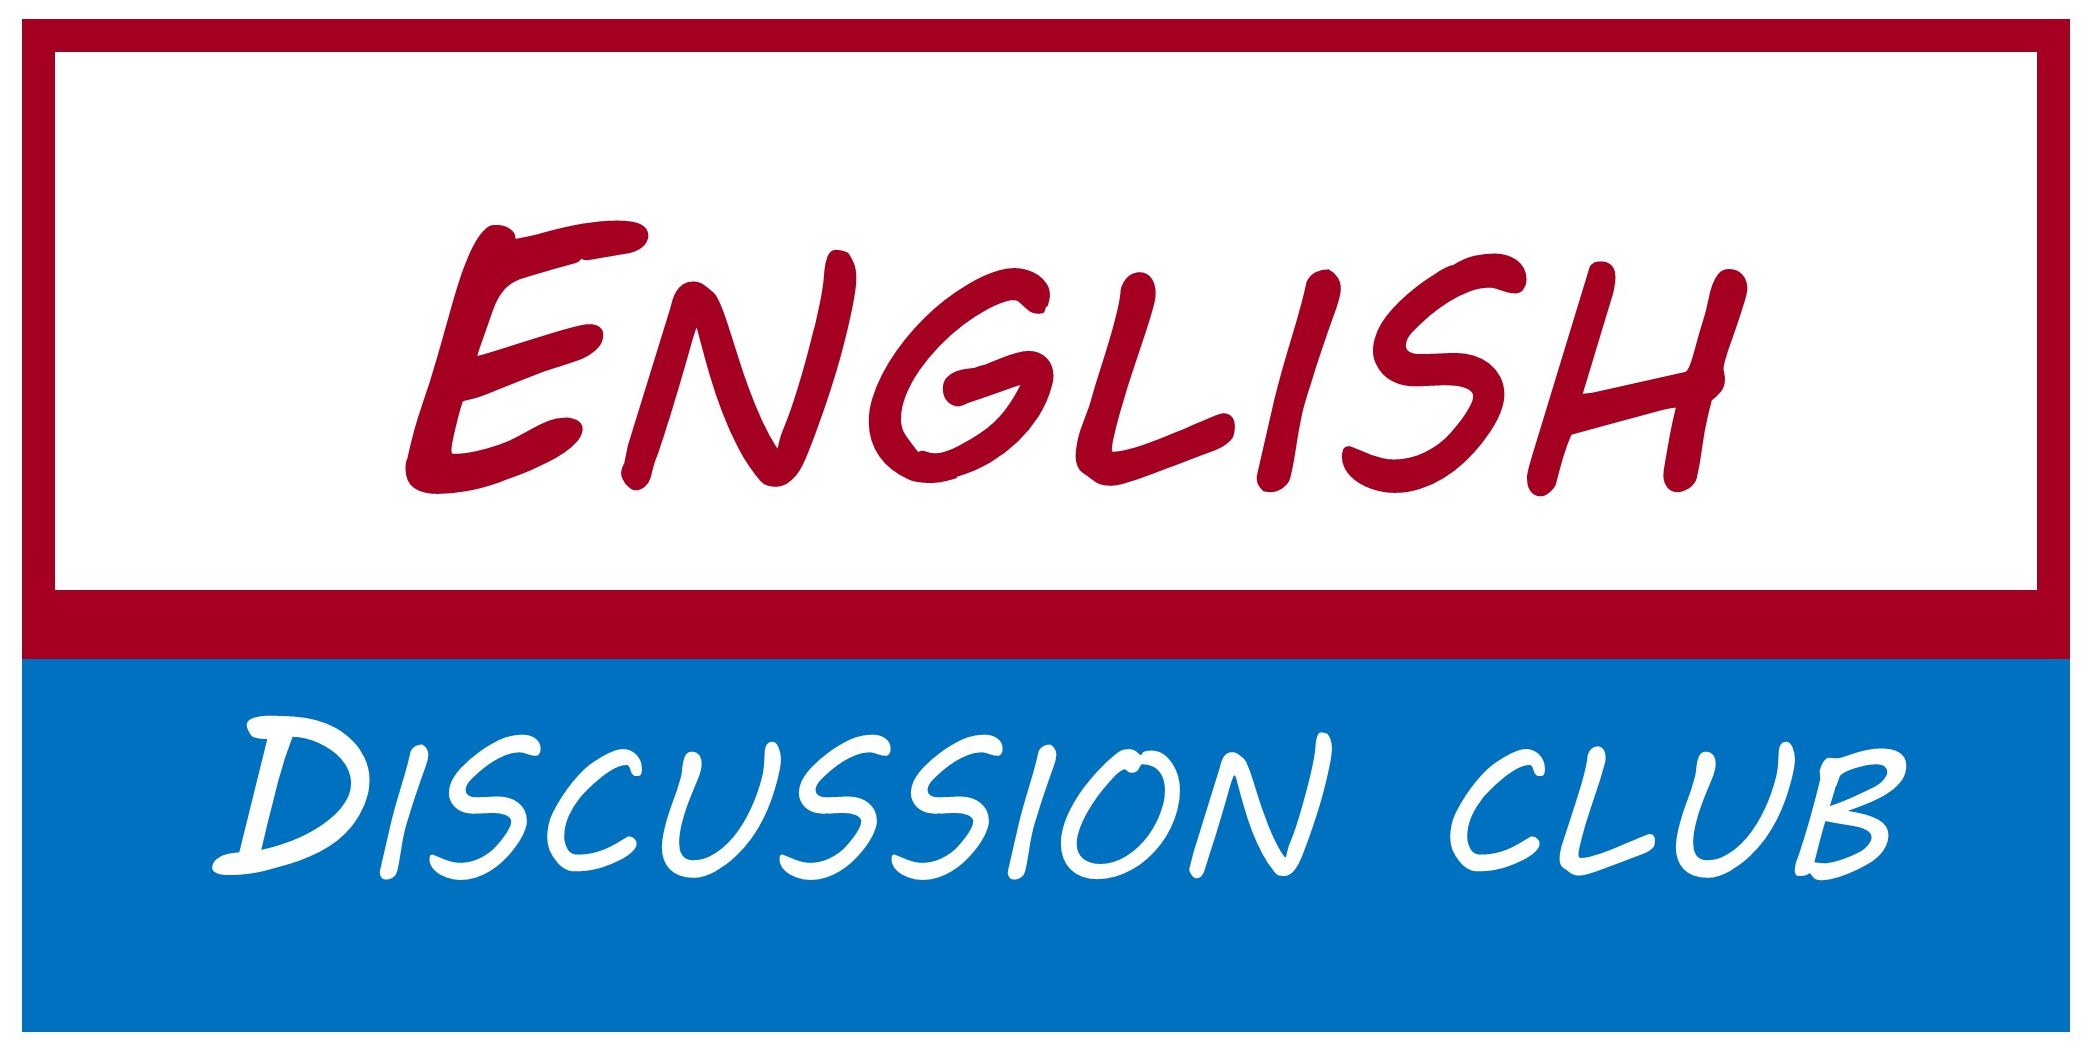 English discussion club